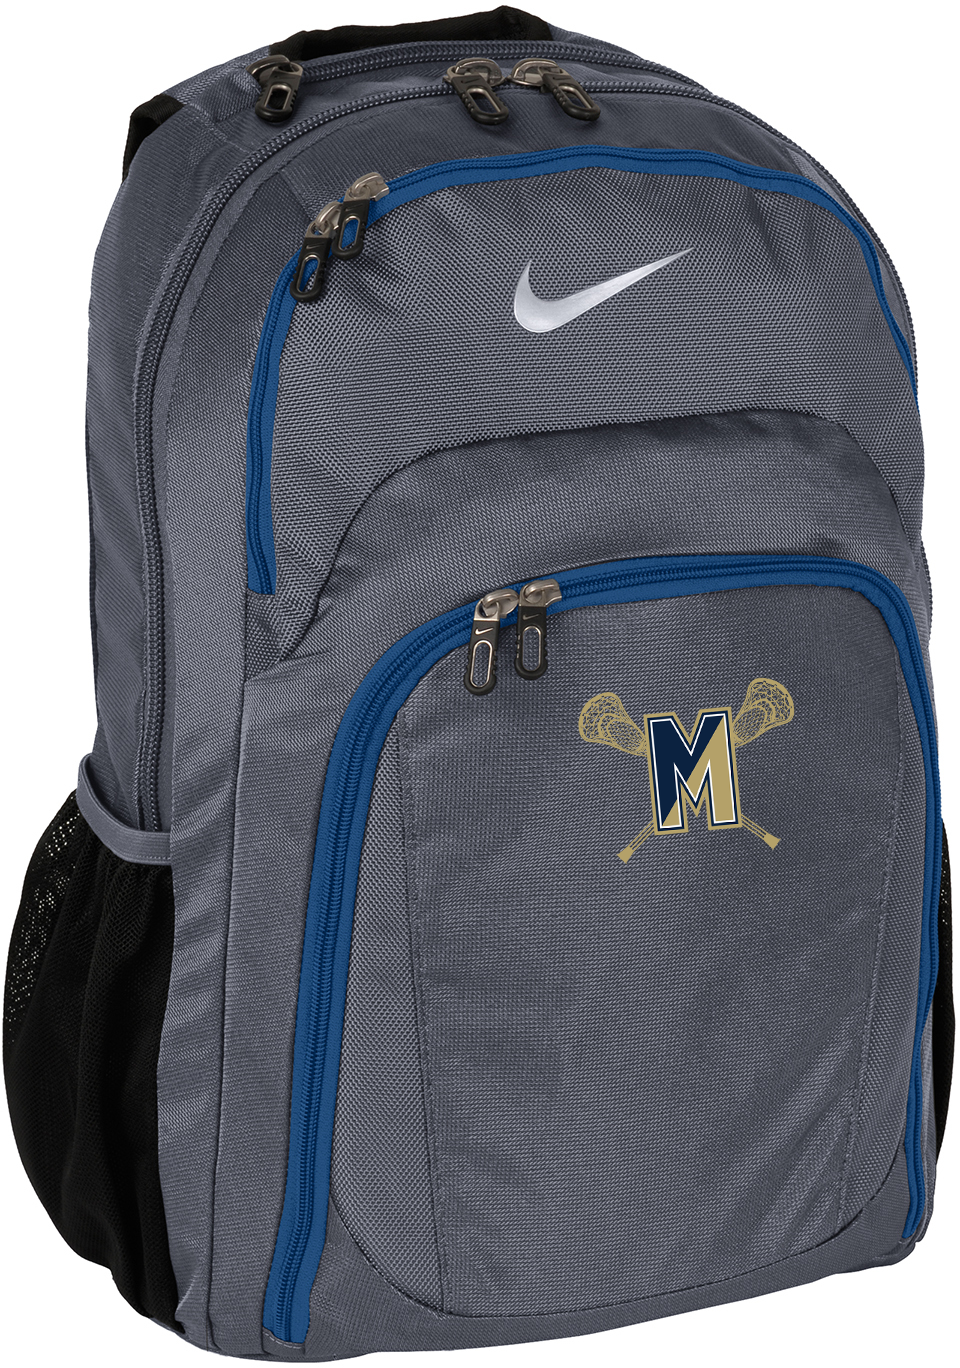 Malden Lacrosse Nike Backpack